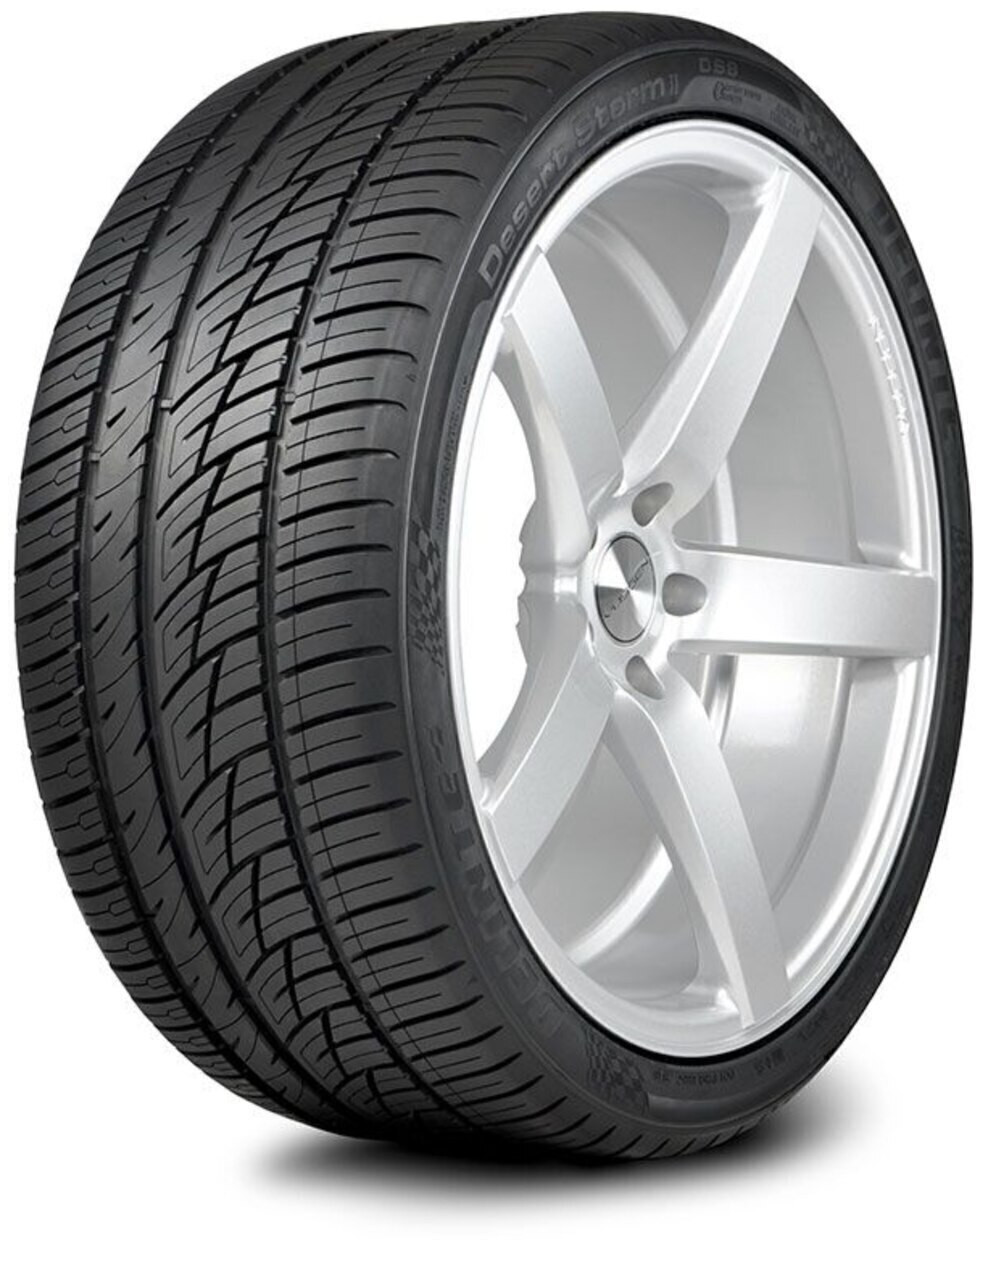 245/40R21 100Y XL DELINTE DS8 UHP A/S BW